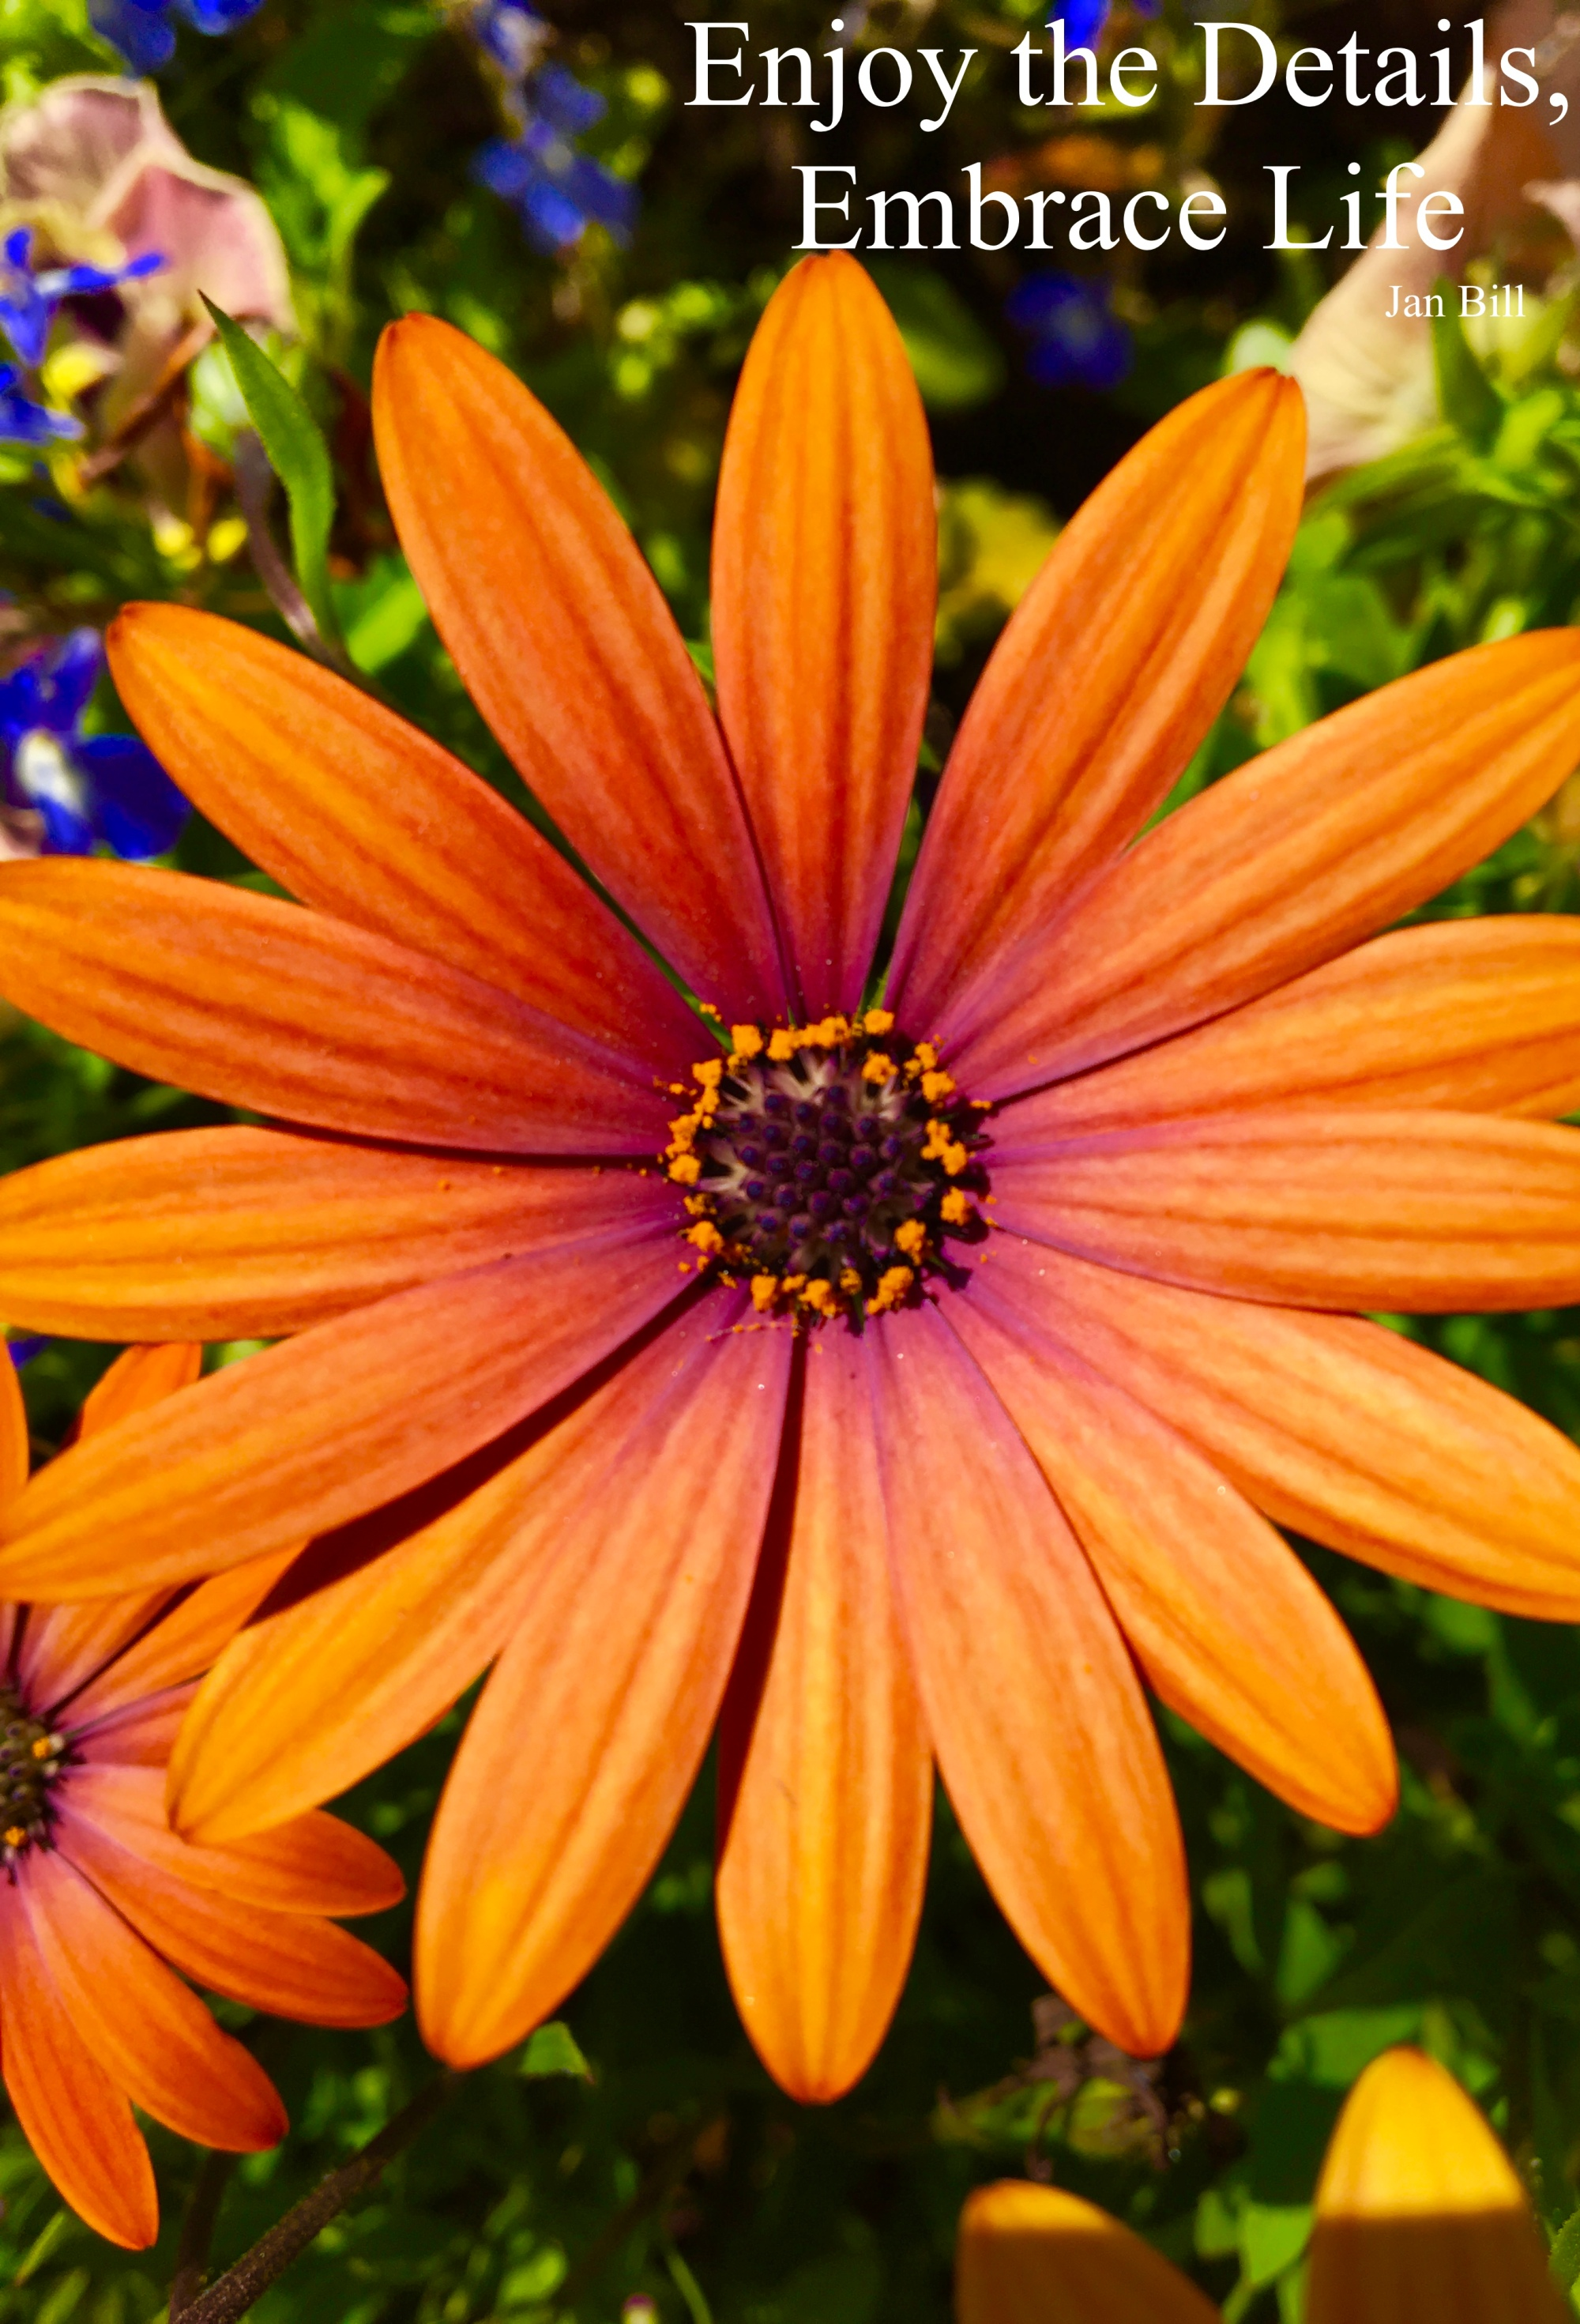 image of orange flower